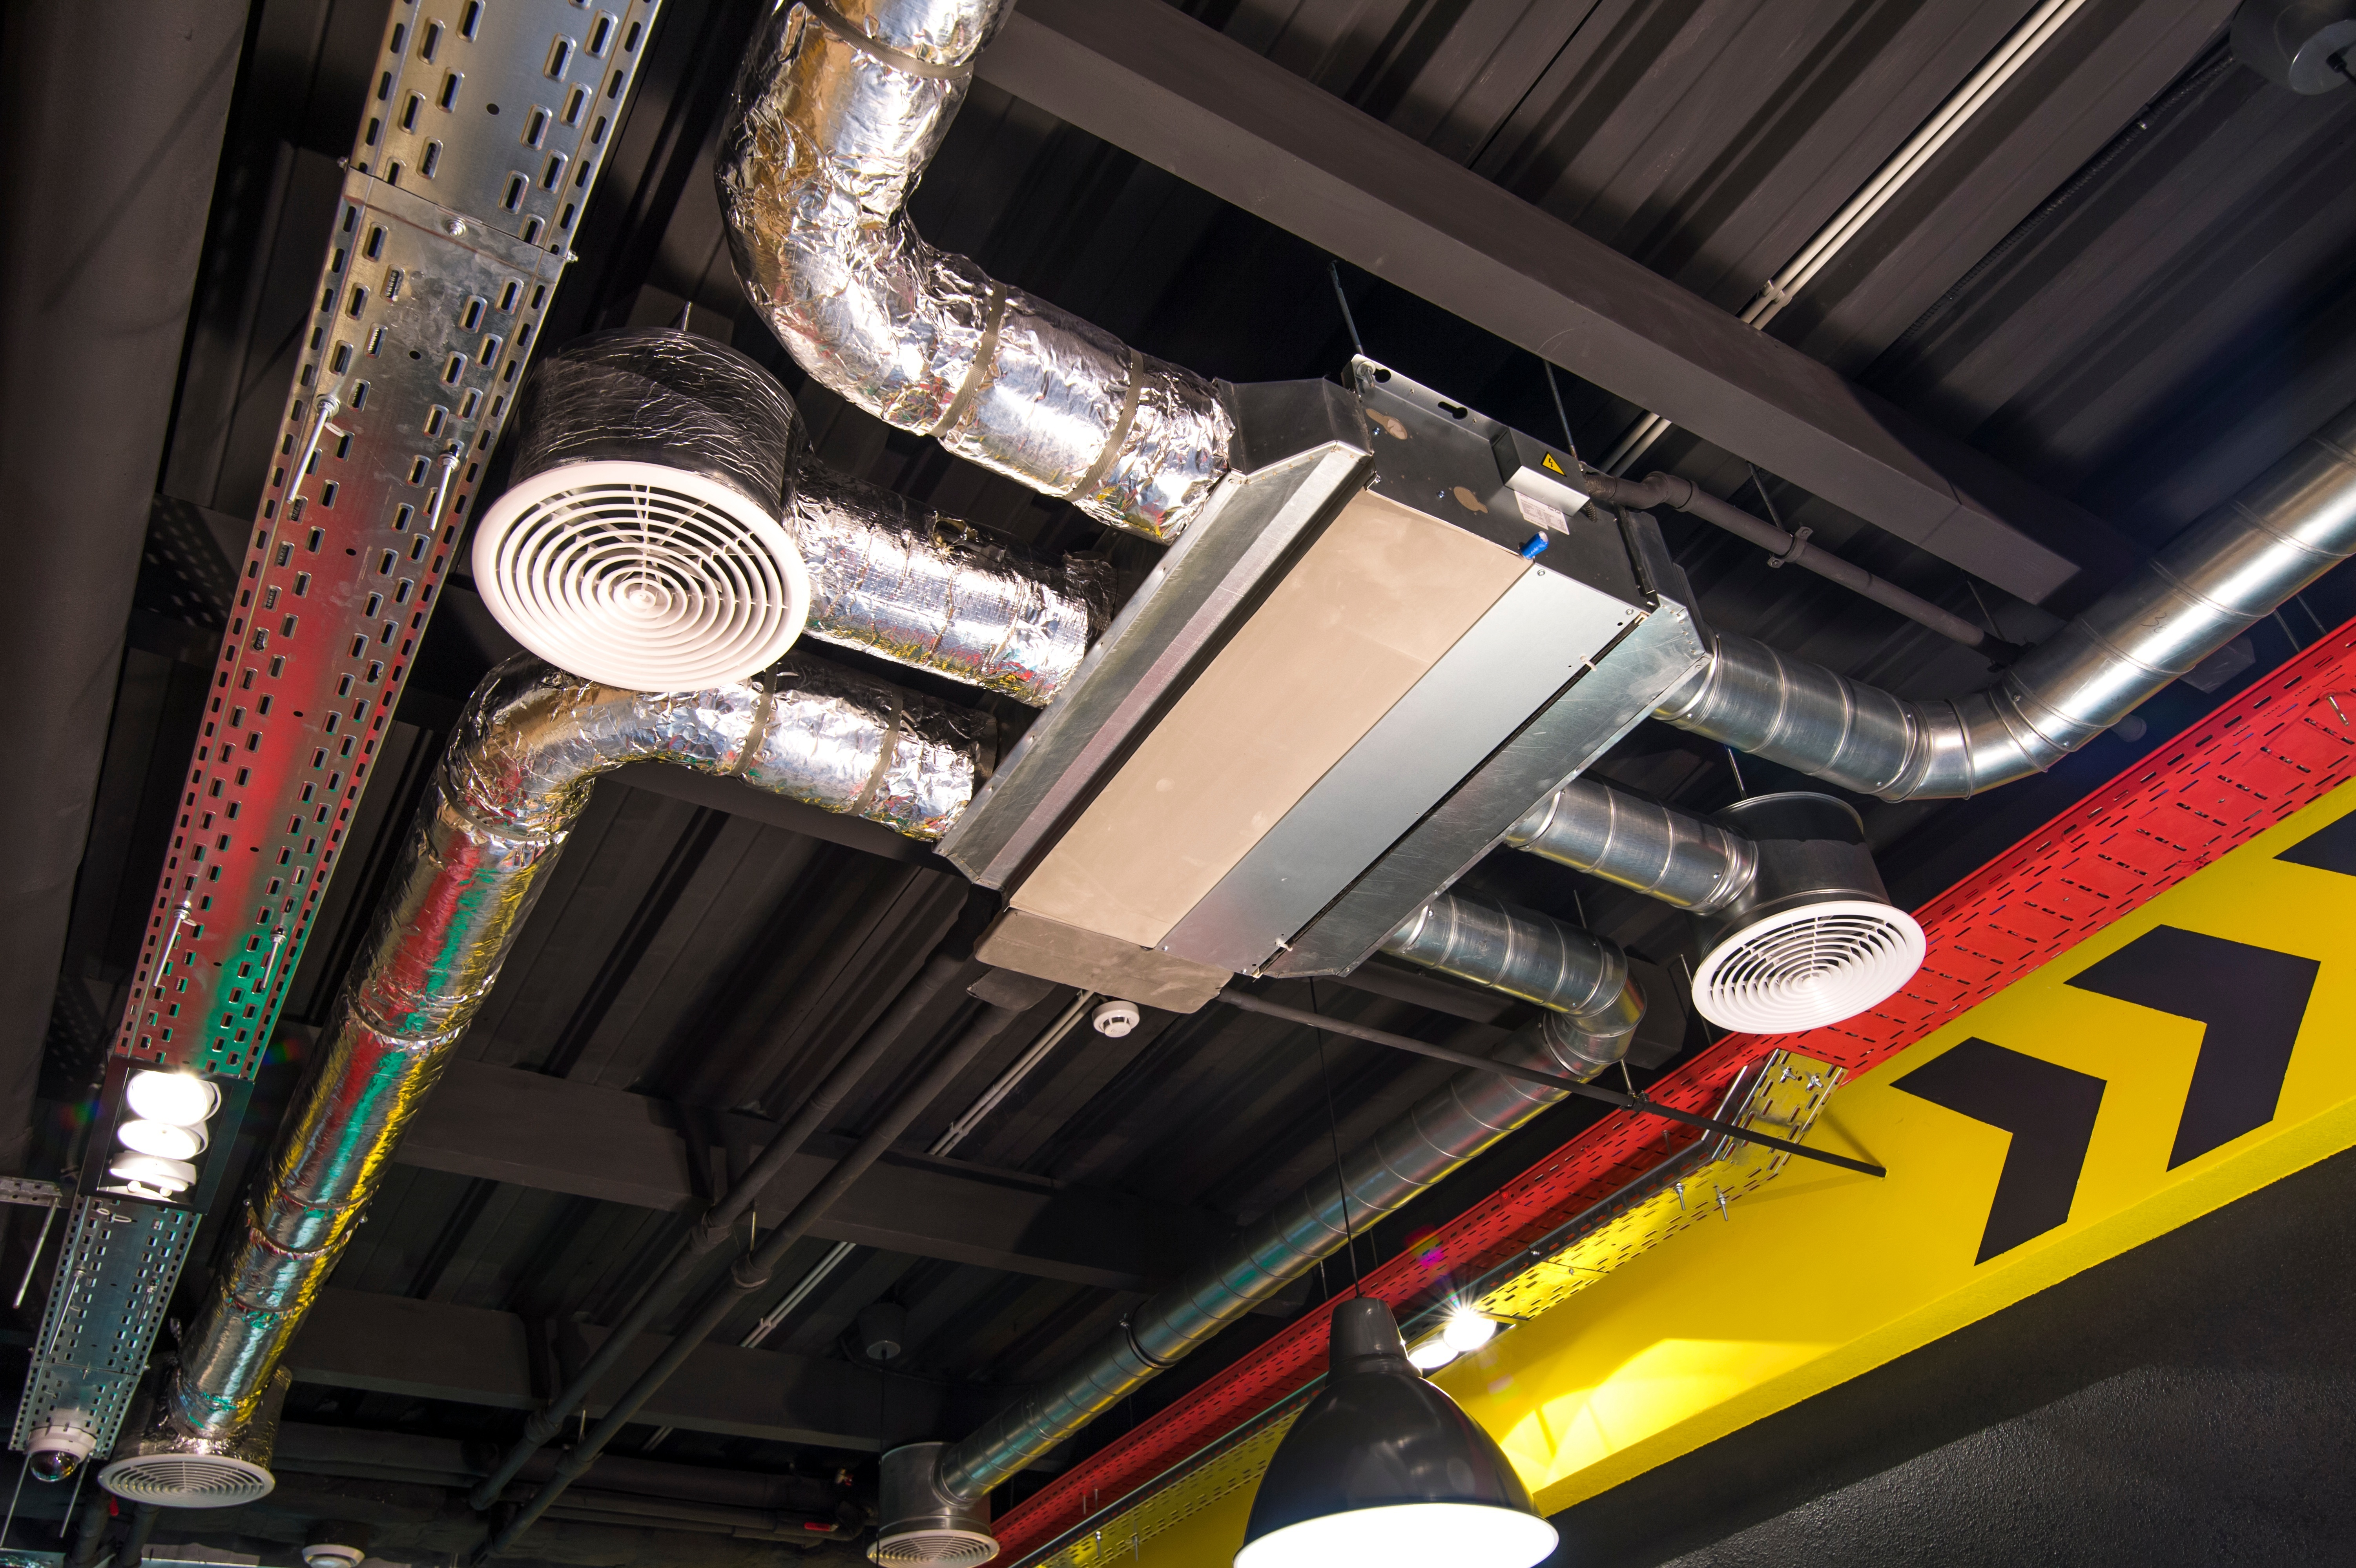 Fan Failure Monitoring In Hvac Uk Supplier Axair Fans System Consists Of Blower Motor Switch